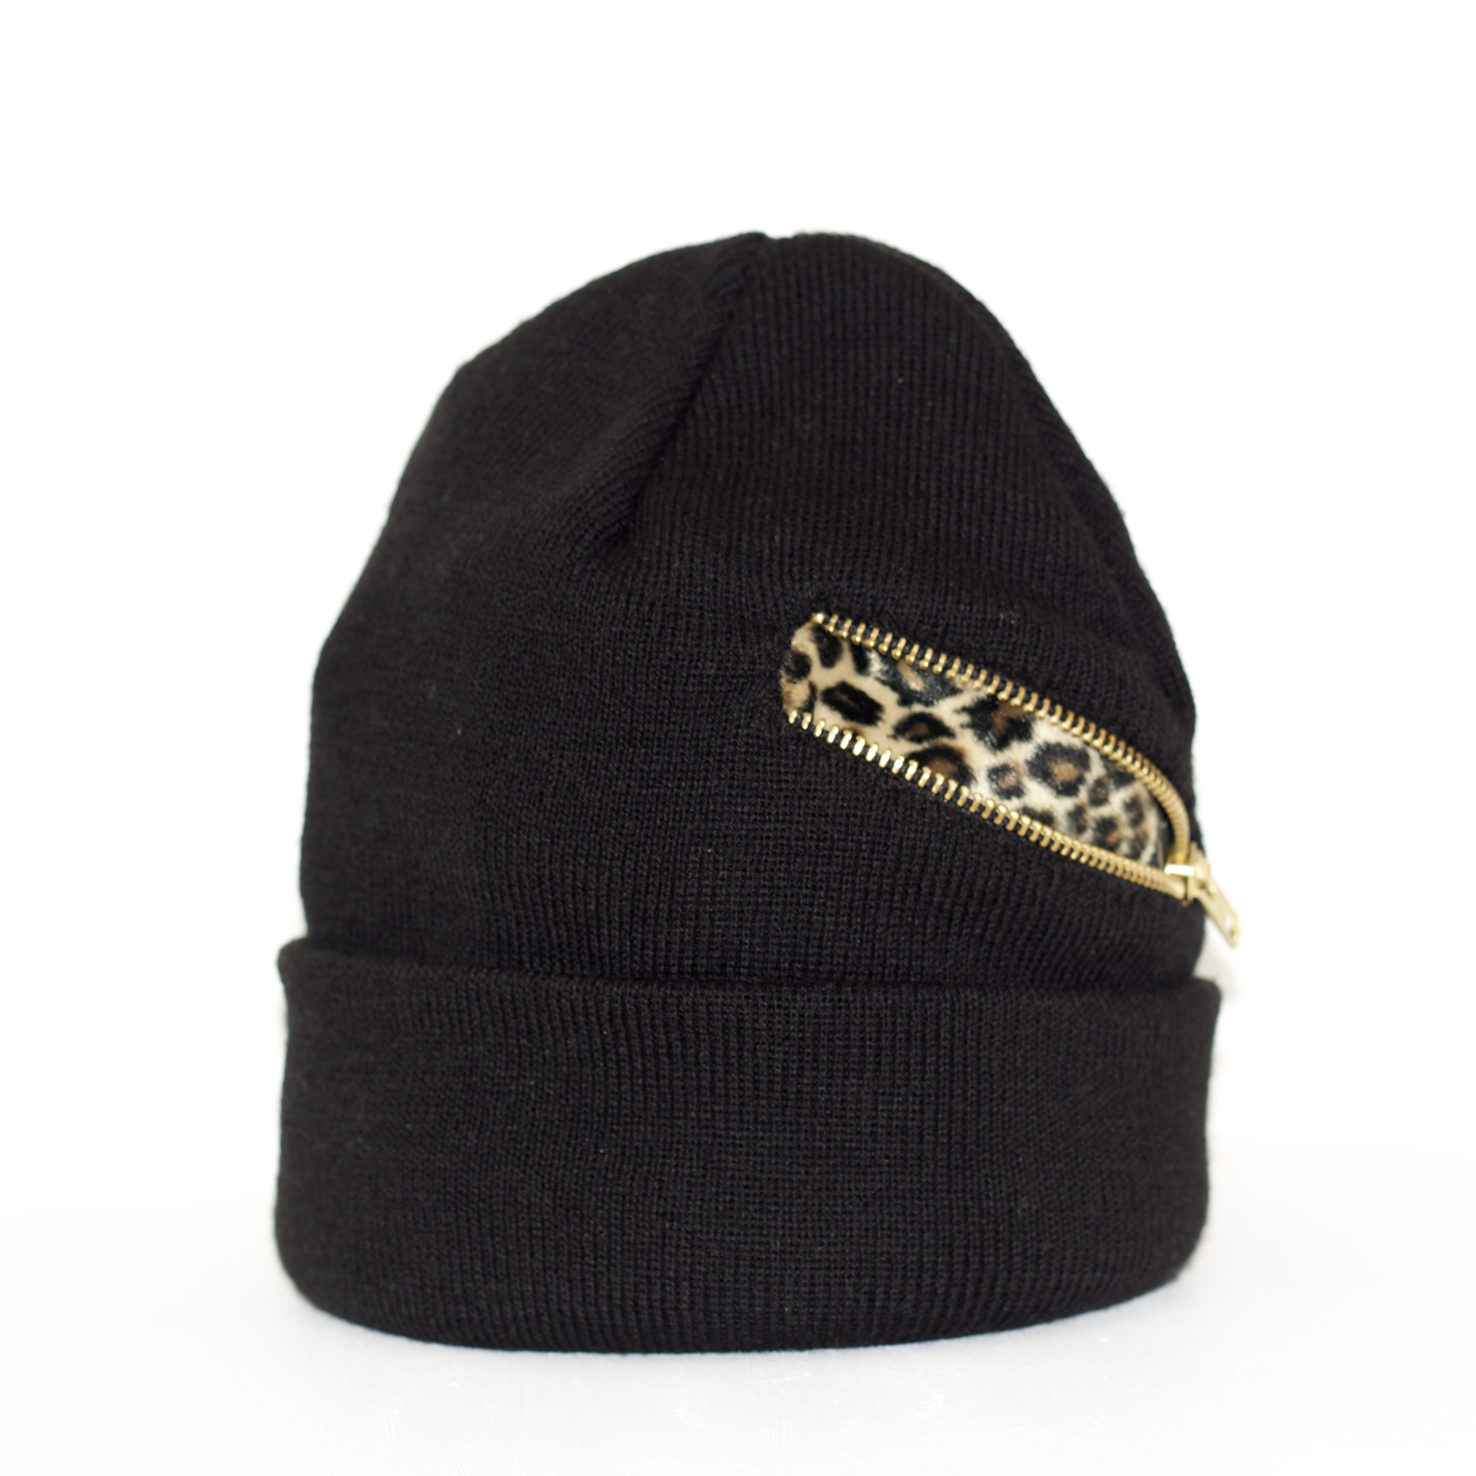 Zipper Beanie with lepard pattern